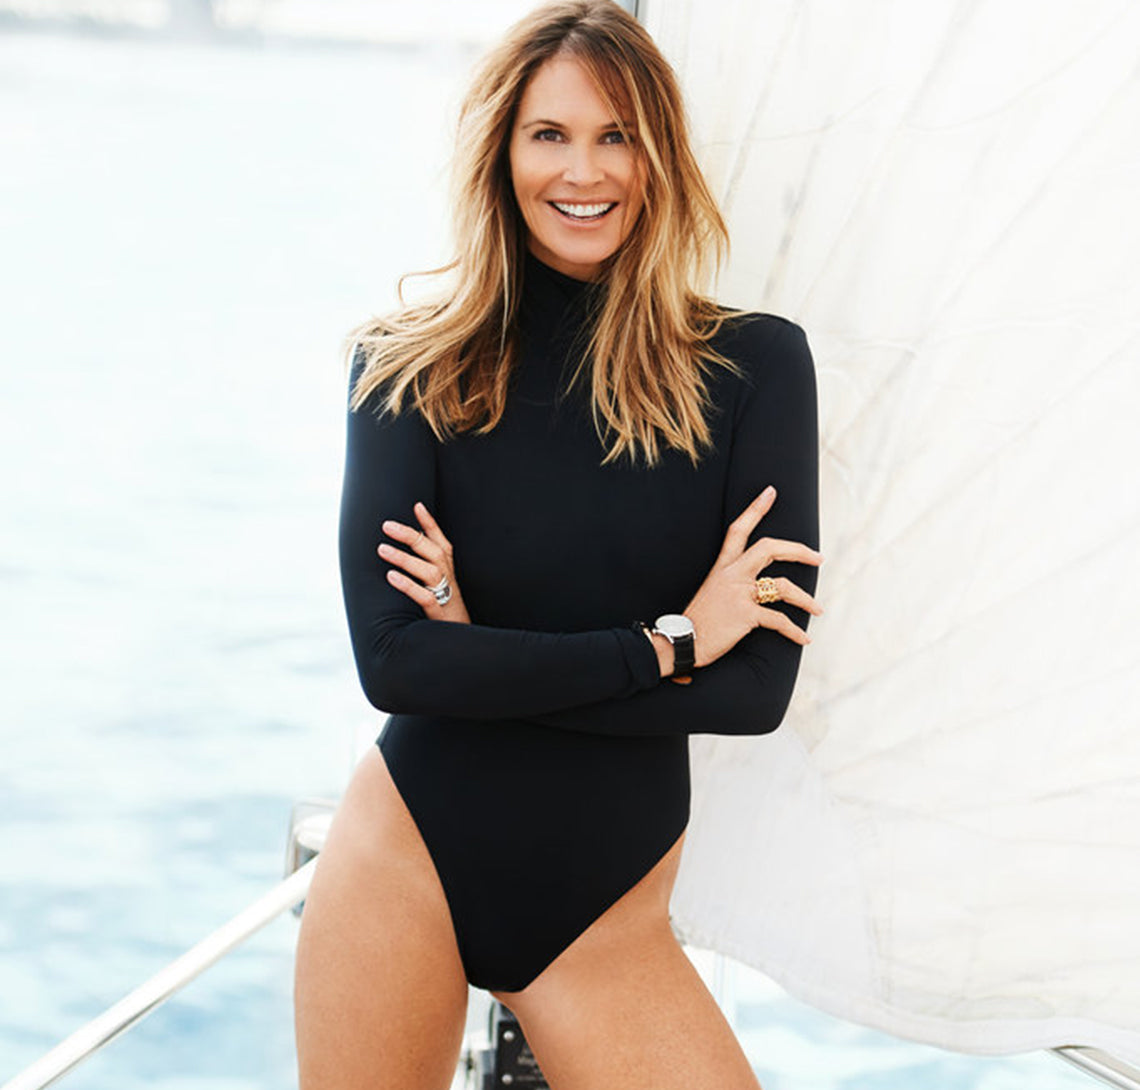 This is how to do complete alkaline wellness like Elle Macpherson